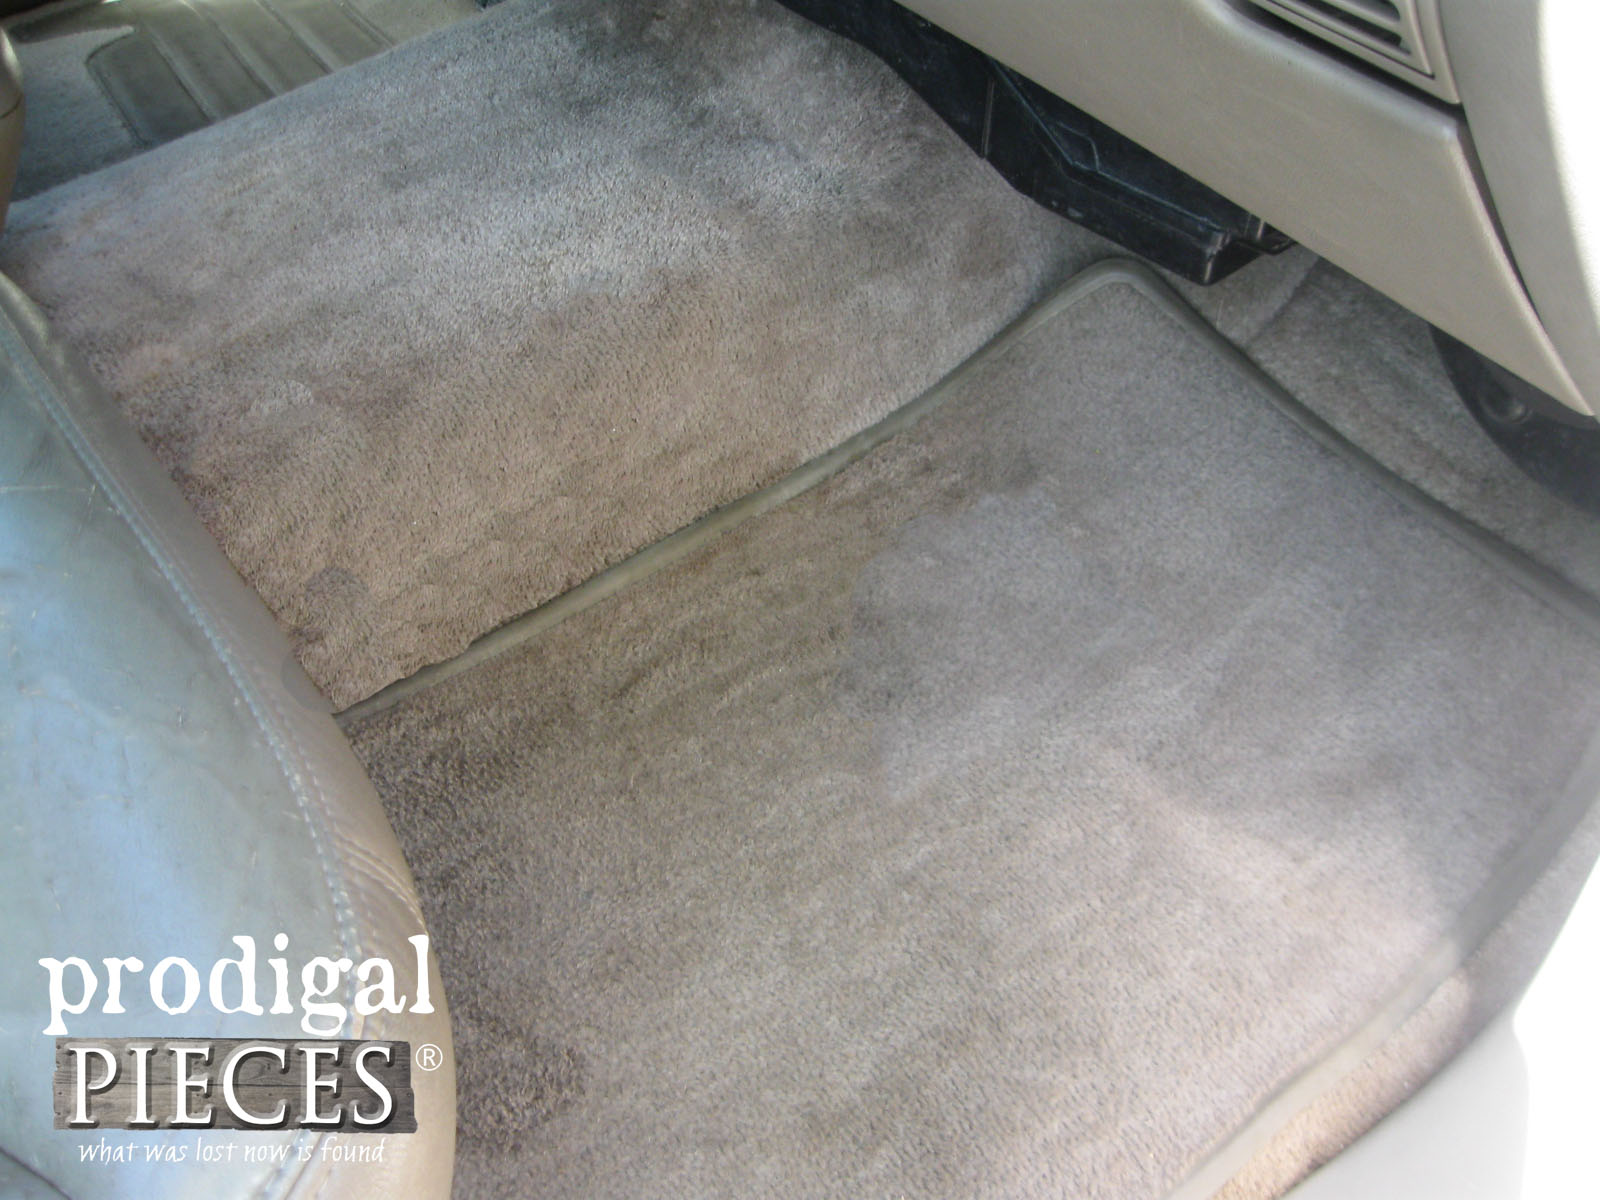 Vehicle Carpet After Chemical Free Cleaning Using the AutoRight Steam Machine by Prodigal Pieces | www.prodigalpieces.com